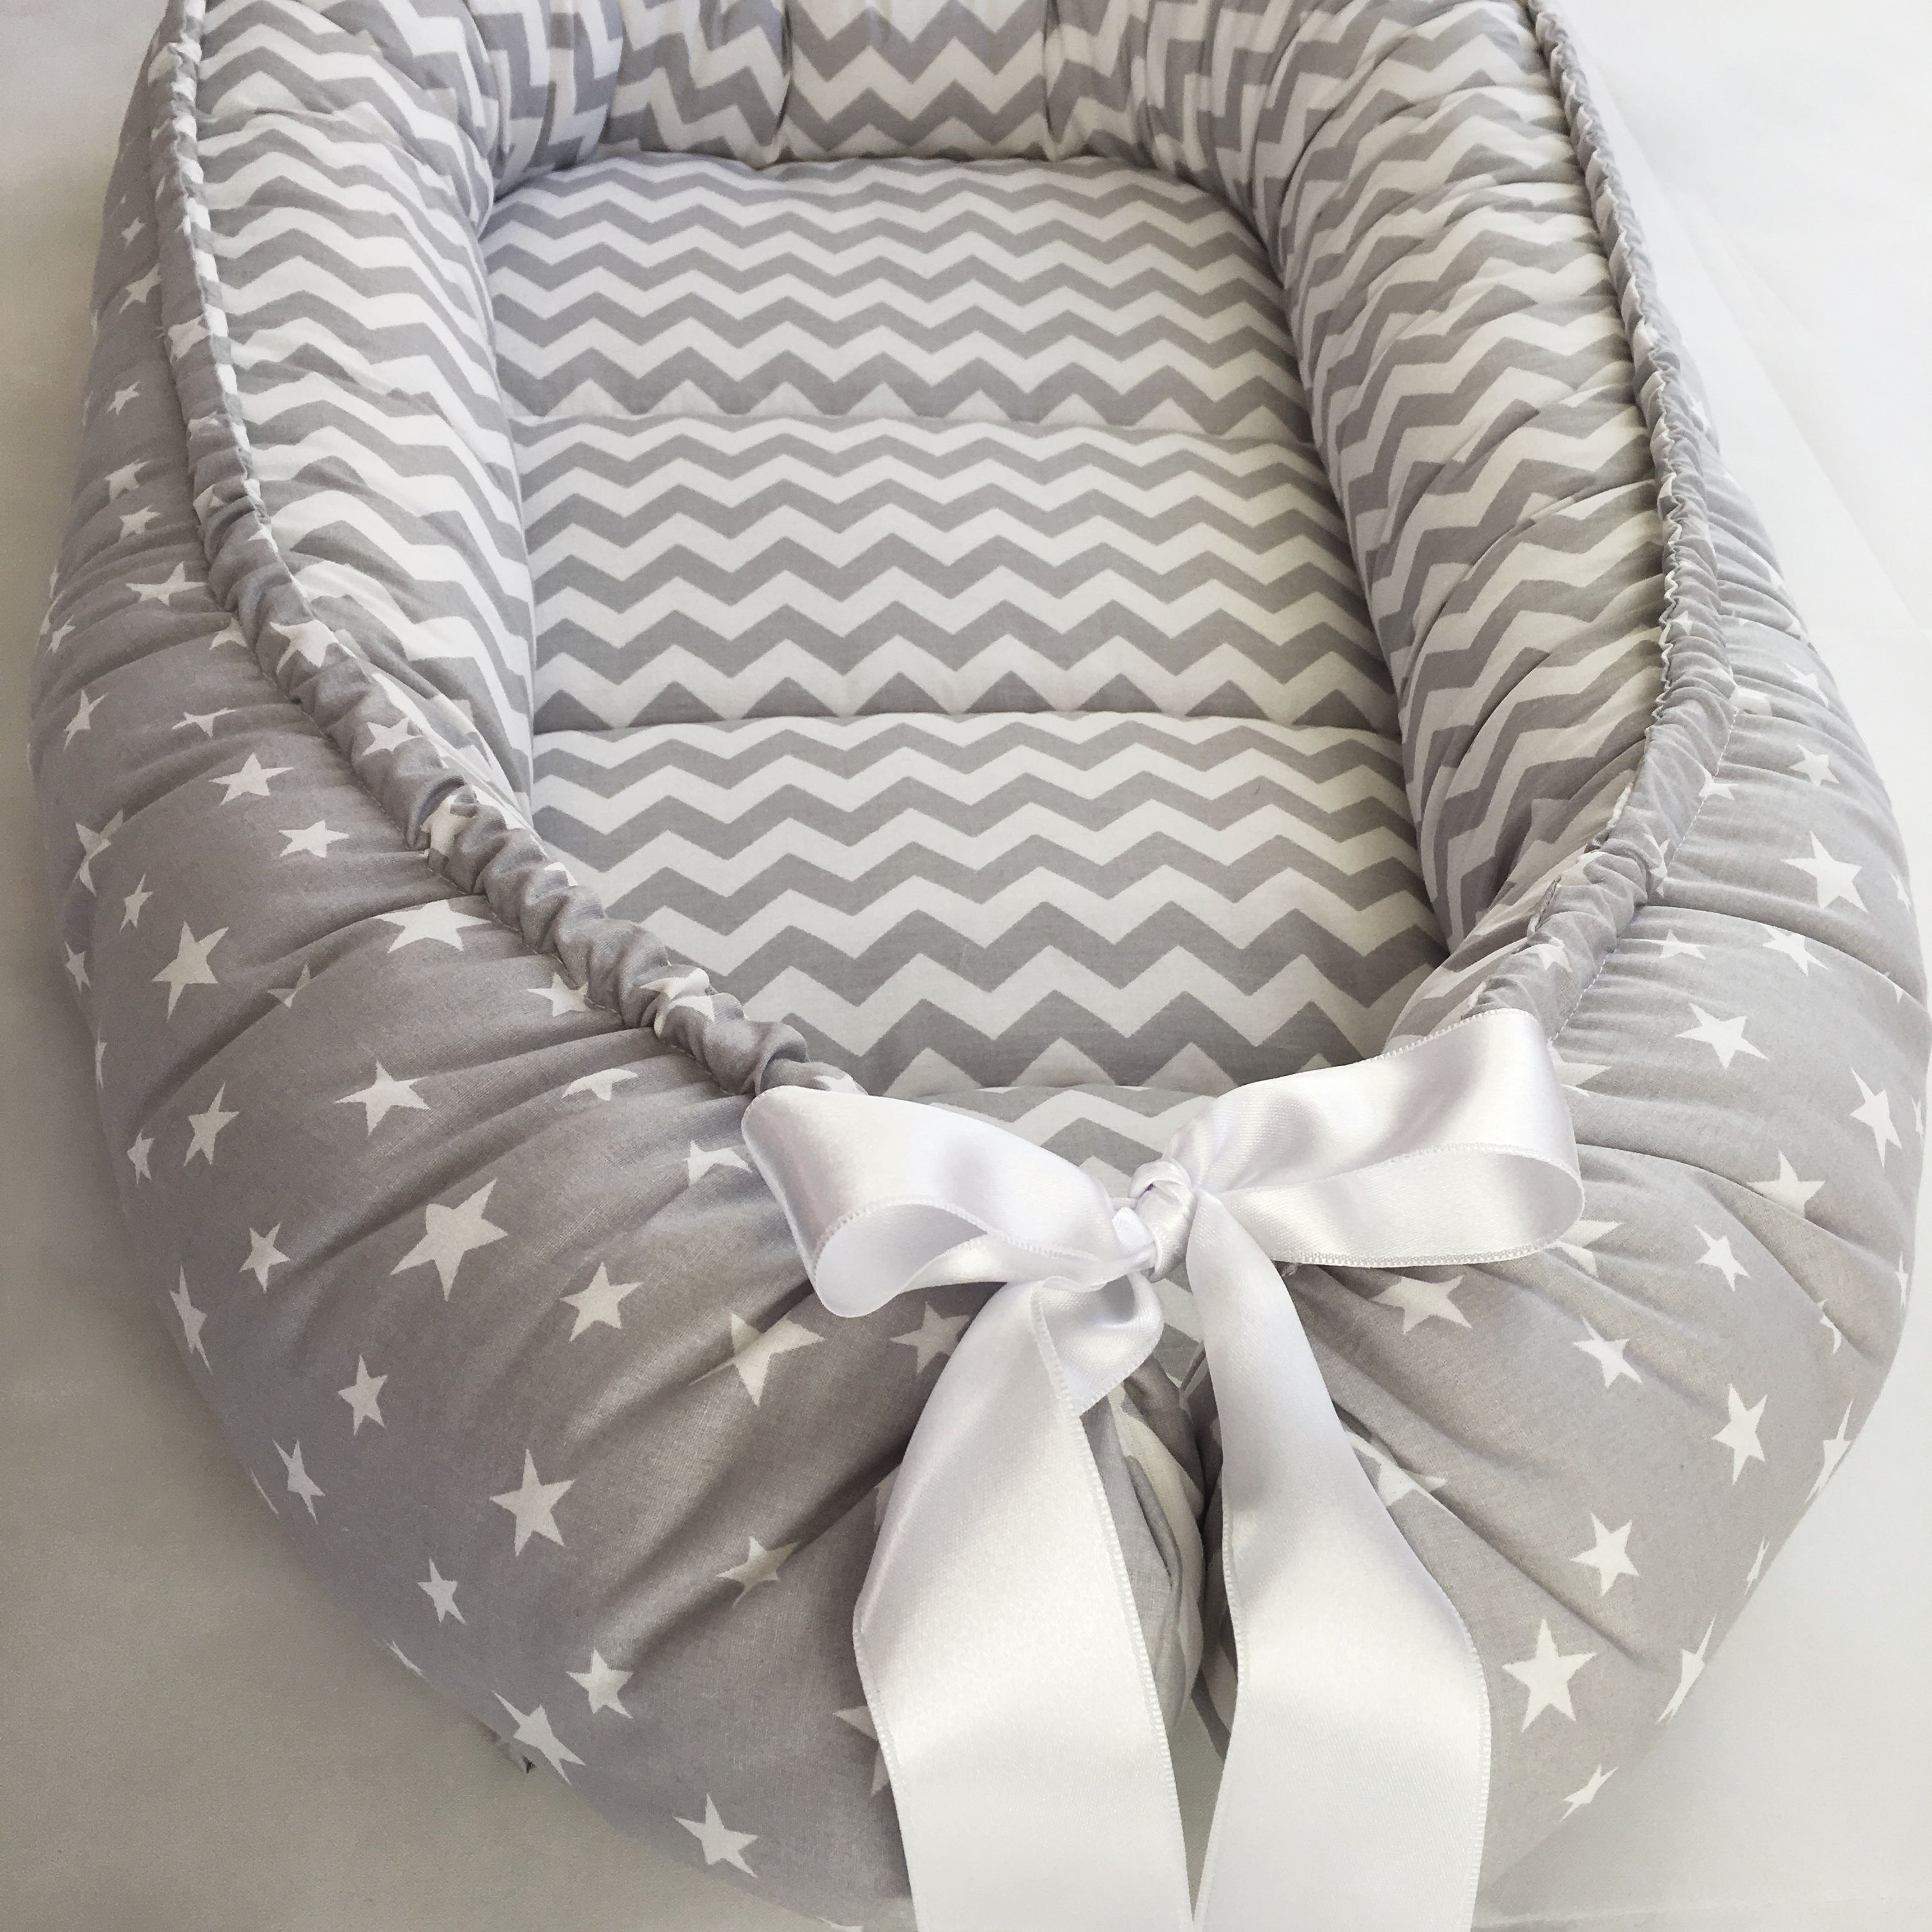 Handmade Double Sided Organic Baby Nest Bed Gray Baby Nest Baby